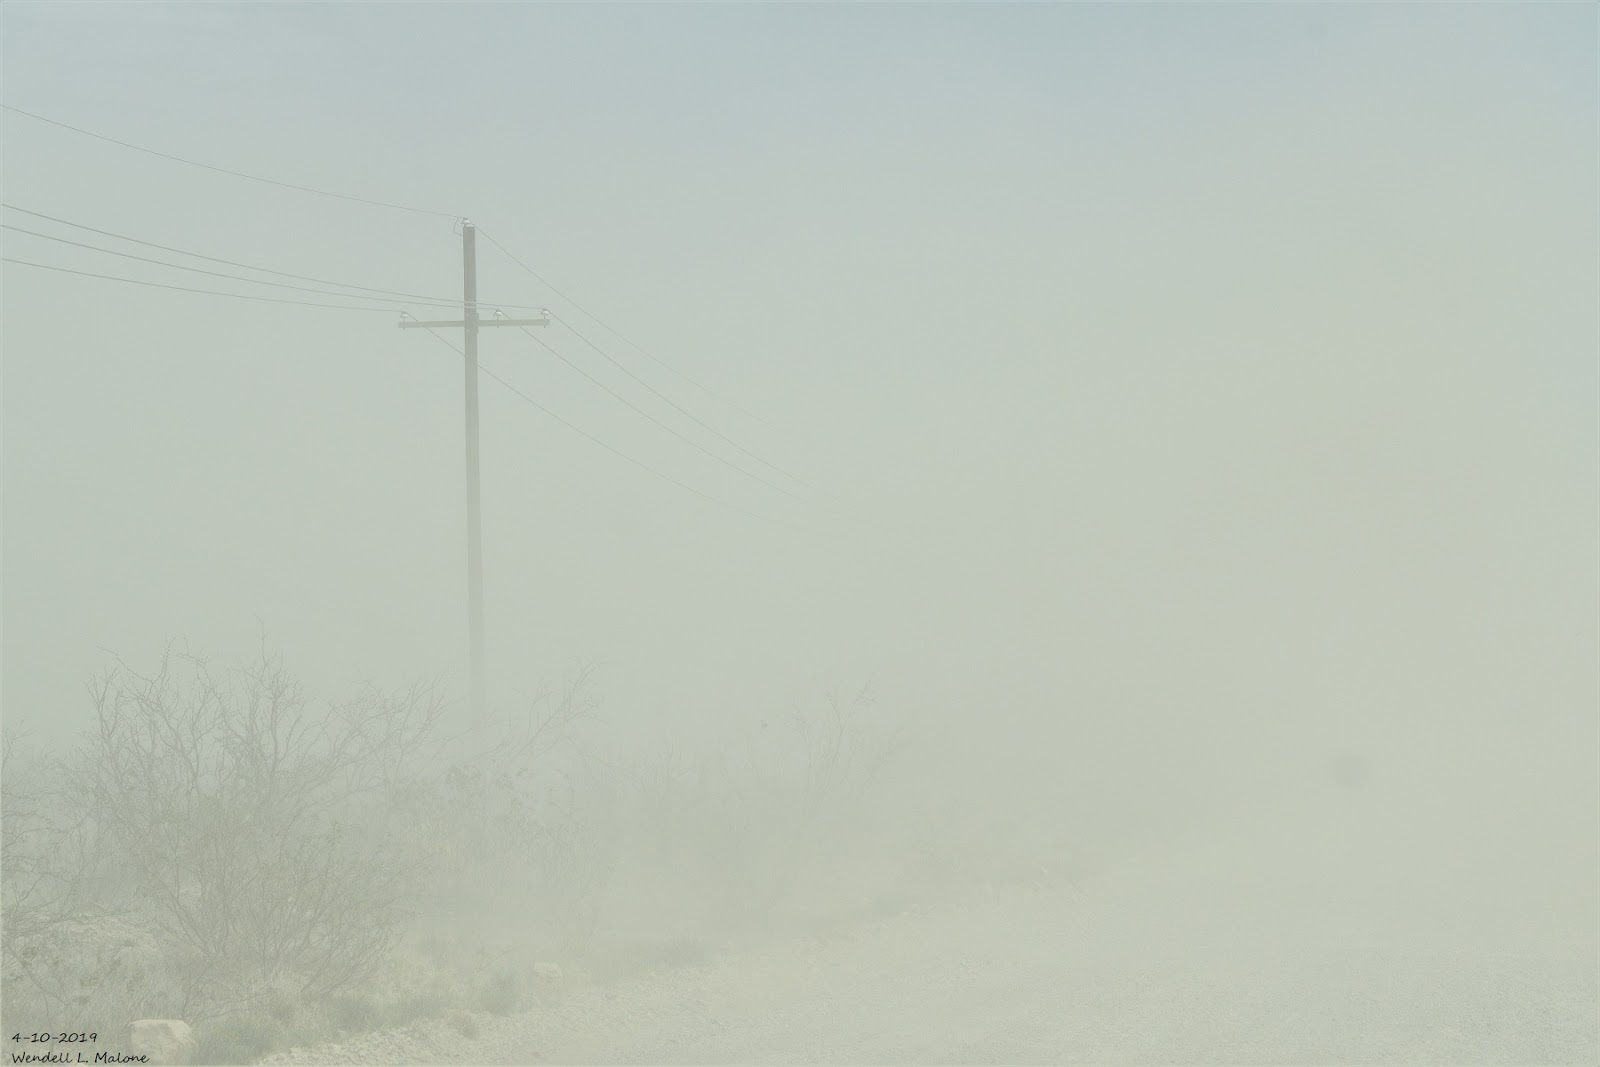 Summary Of The High Wind/Blowing Dust Event - Wednesday